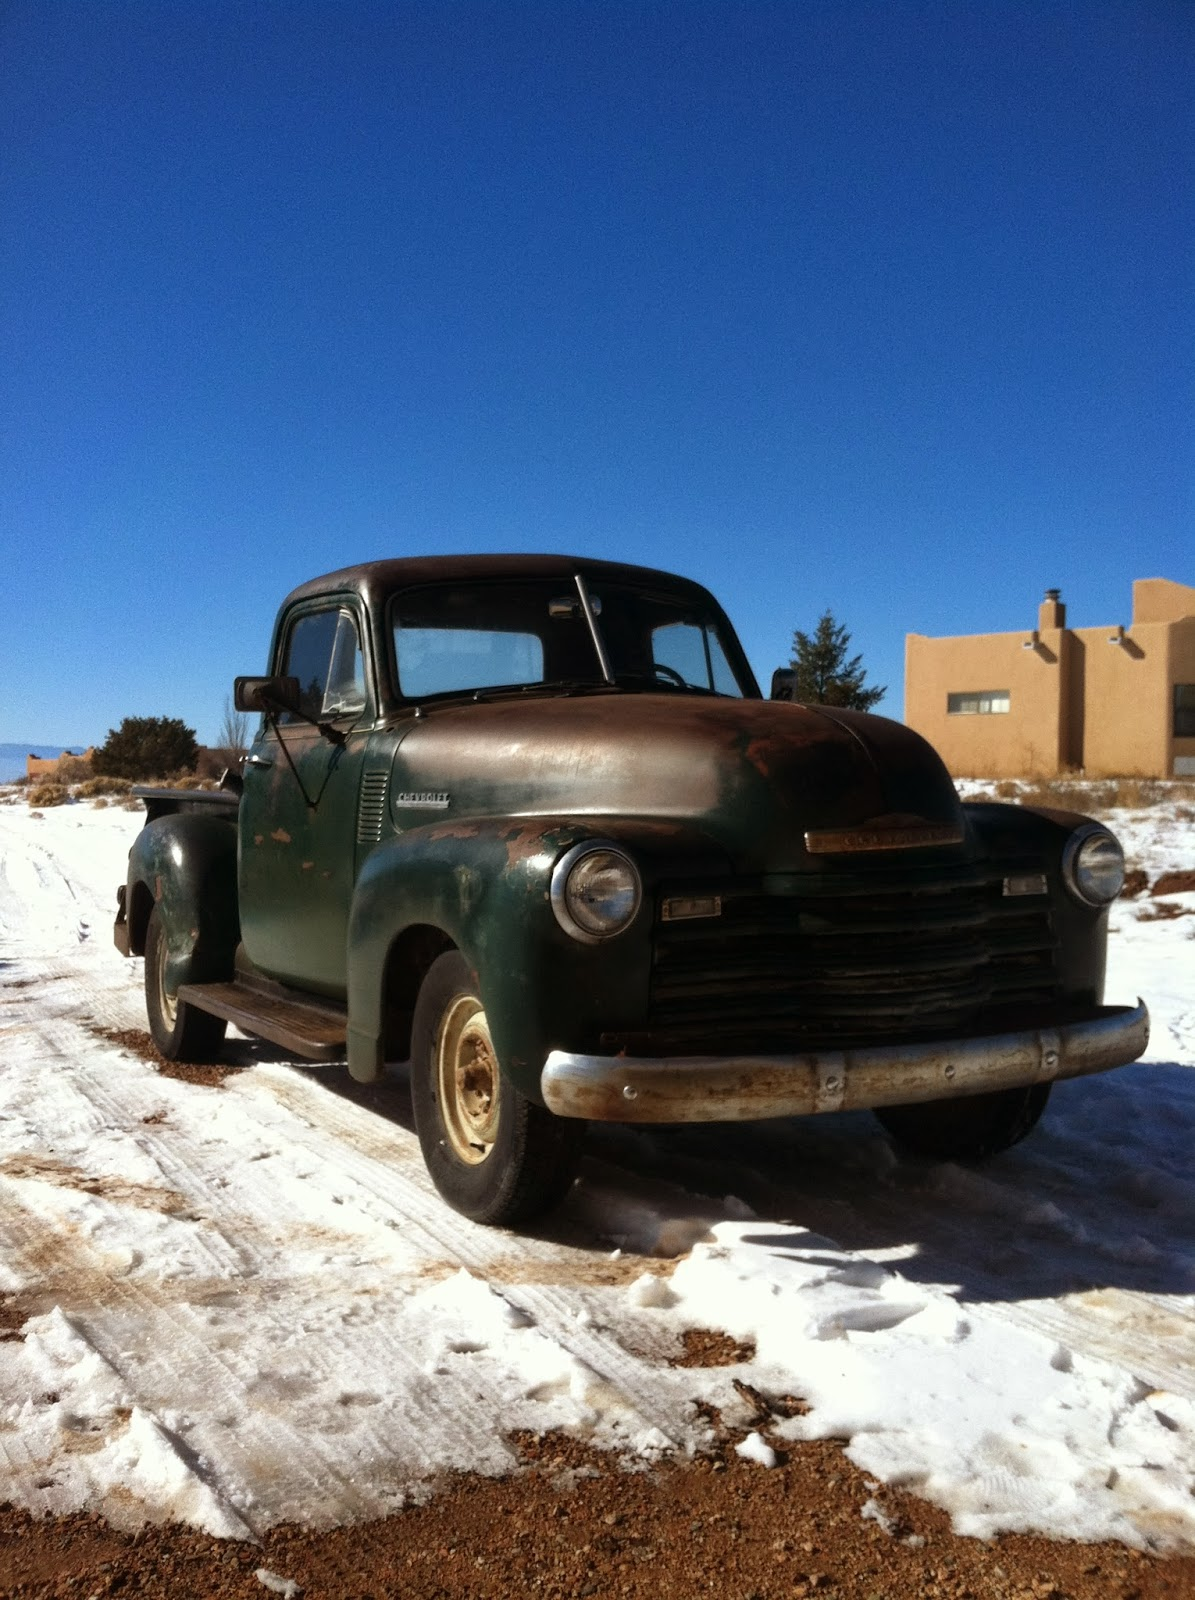 Autoliterate 1949 Chevrolet Truck New Mexico Snow 1942 Chevy Patina I Might Have Preferred The Barn Fresh But Admire His Old Man With An Oilcan Approach More Of These Advanced Design Era Trucks Here And